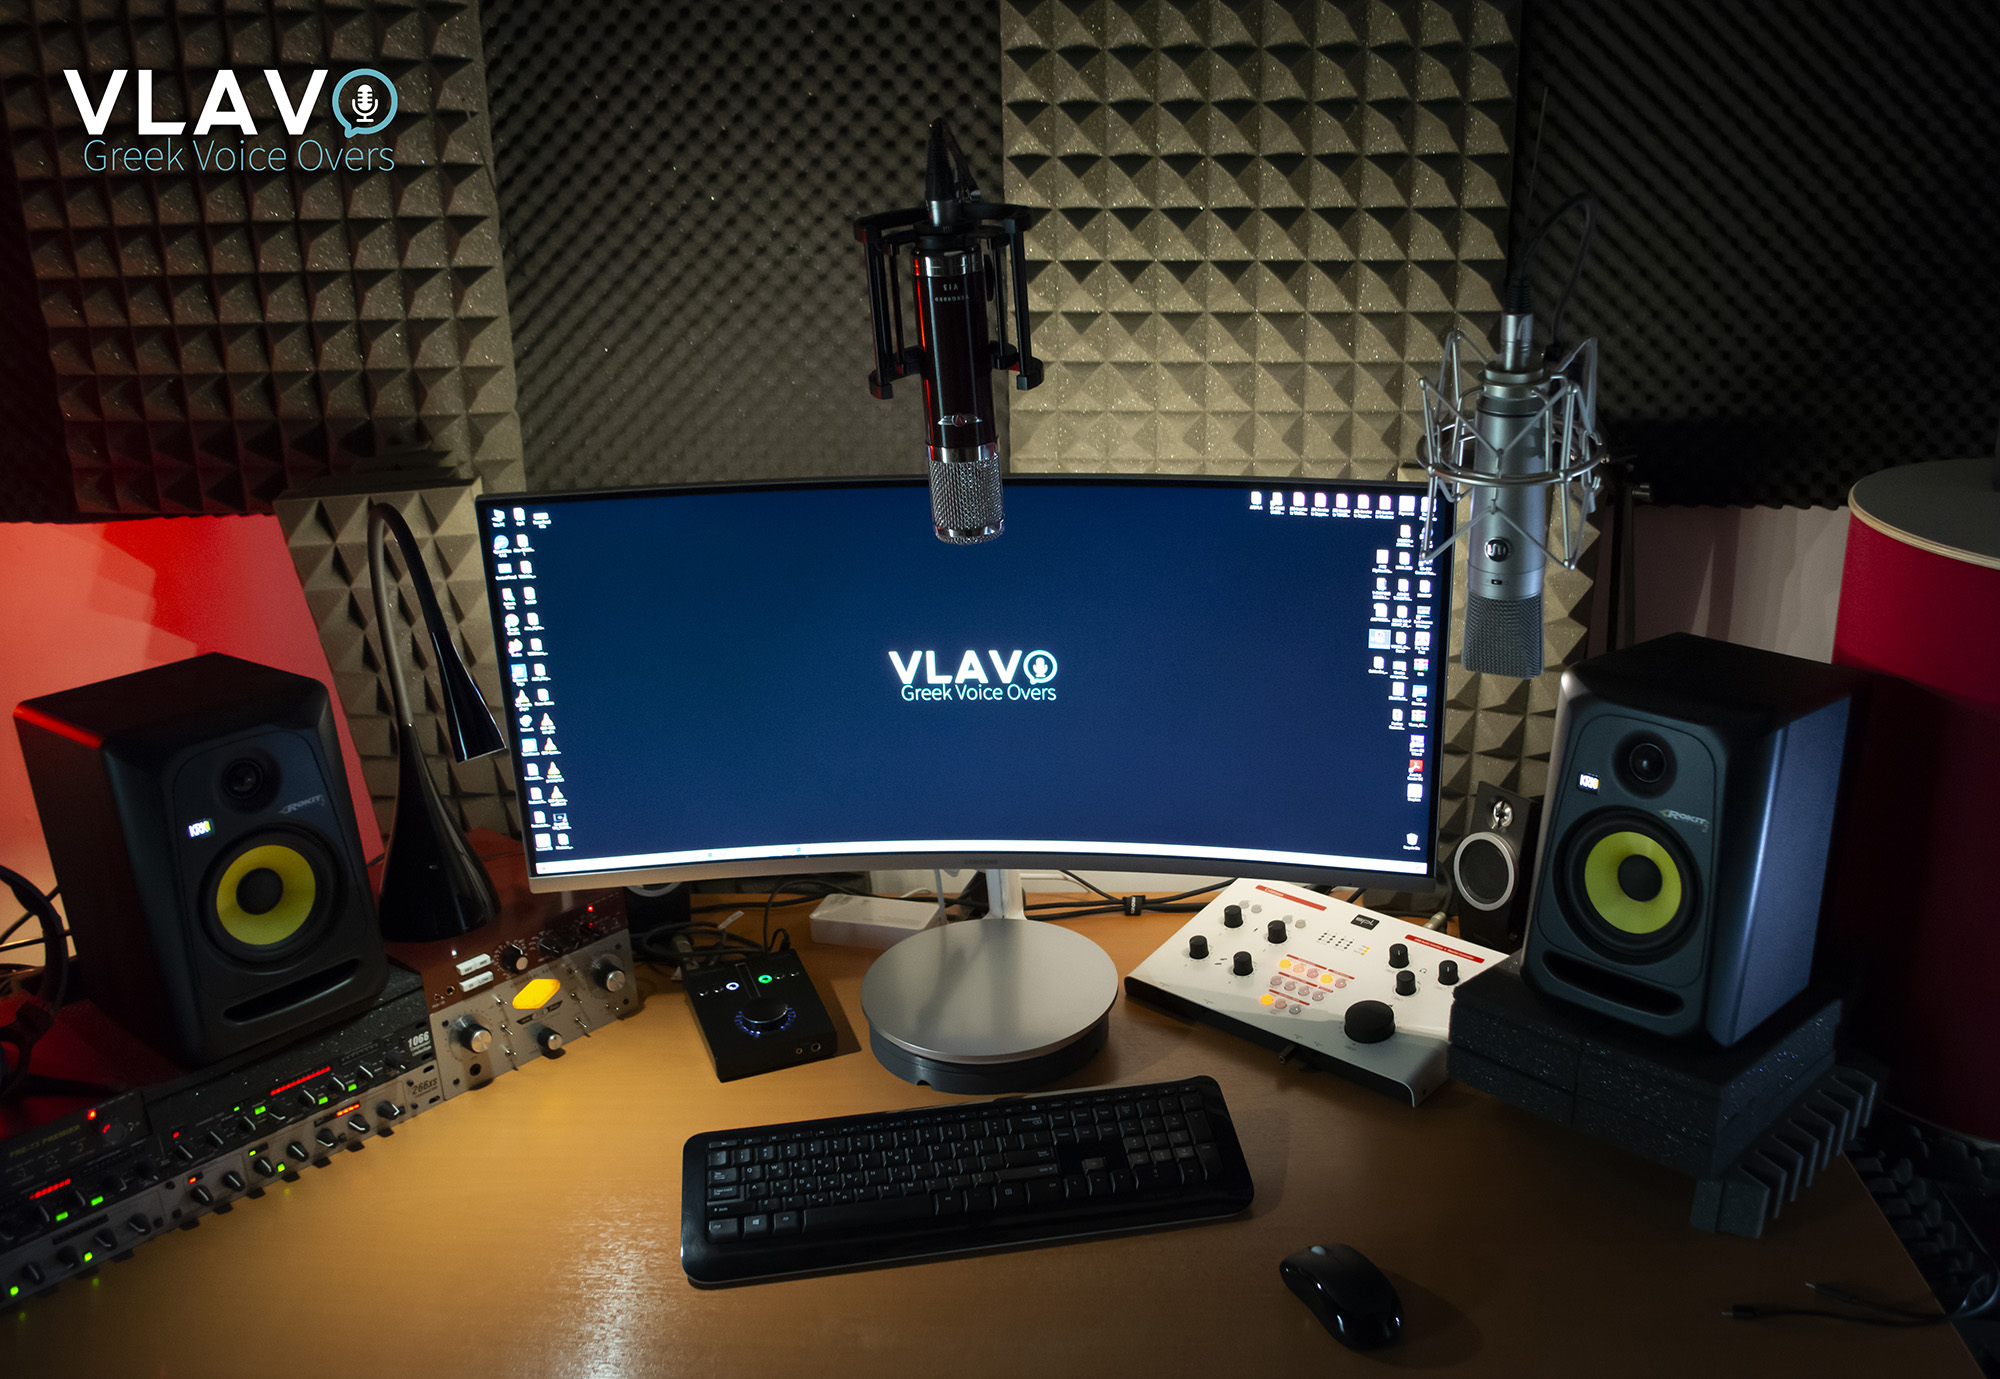 VLAVO-GREEK-VOICE-OVERS-STUDIO-web